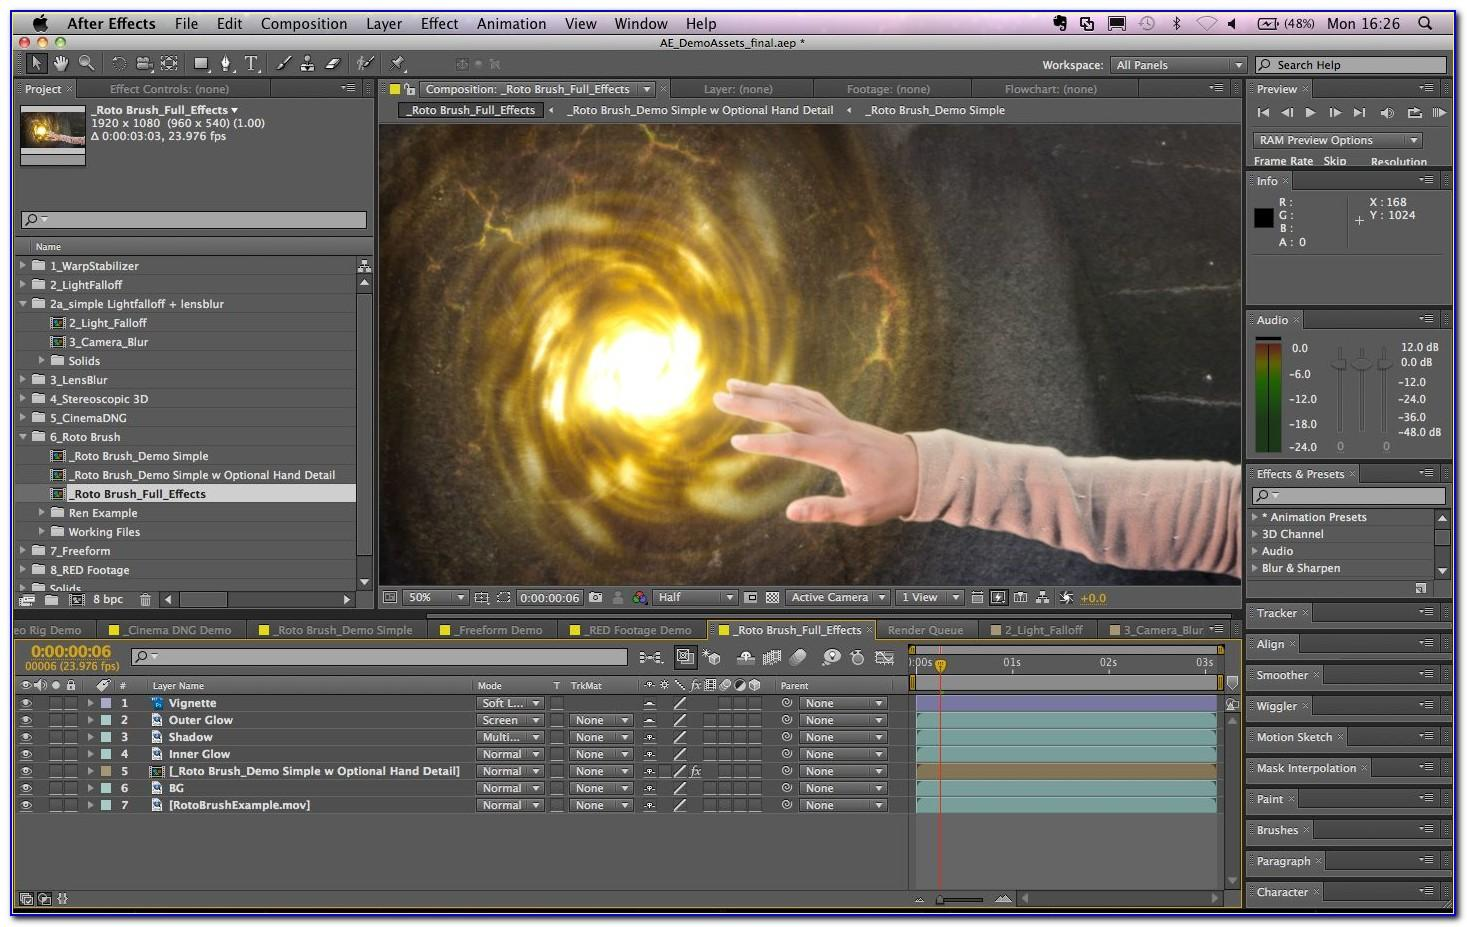 After Effect Cs4 Template Free Download